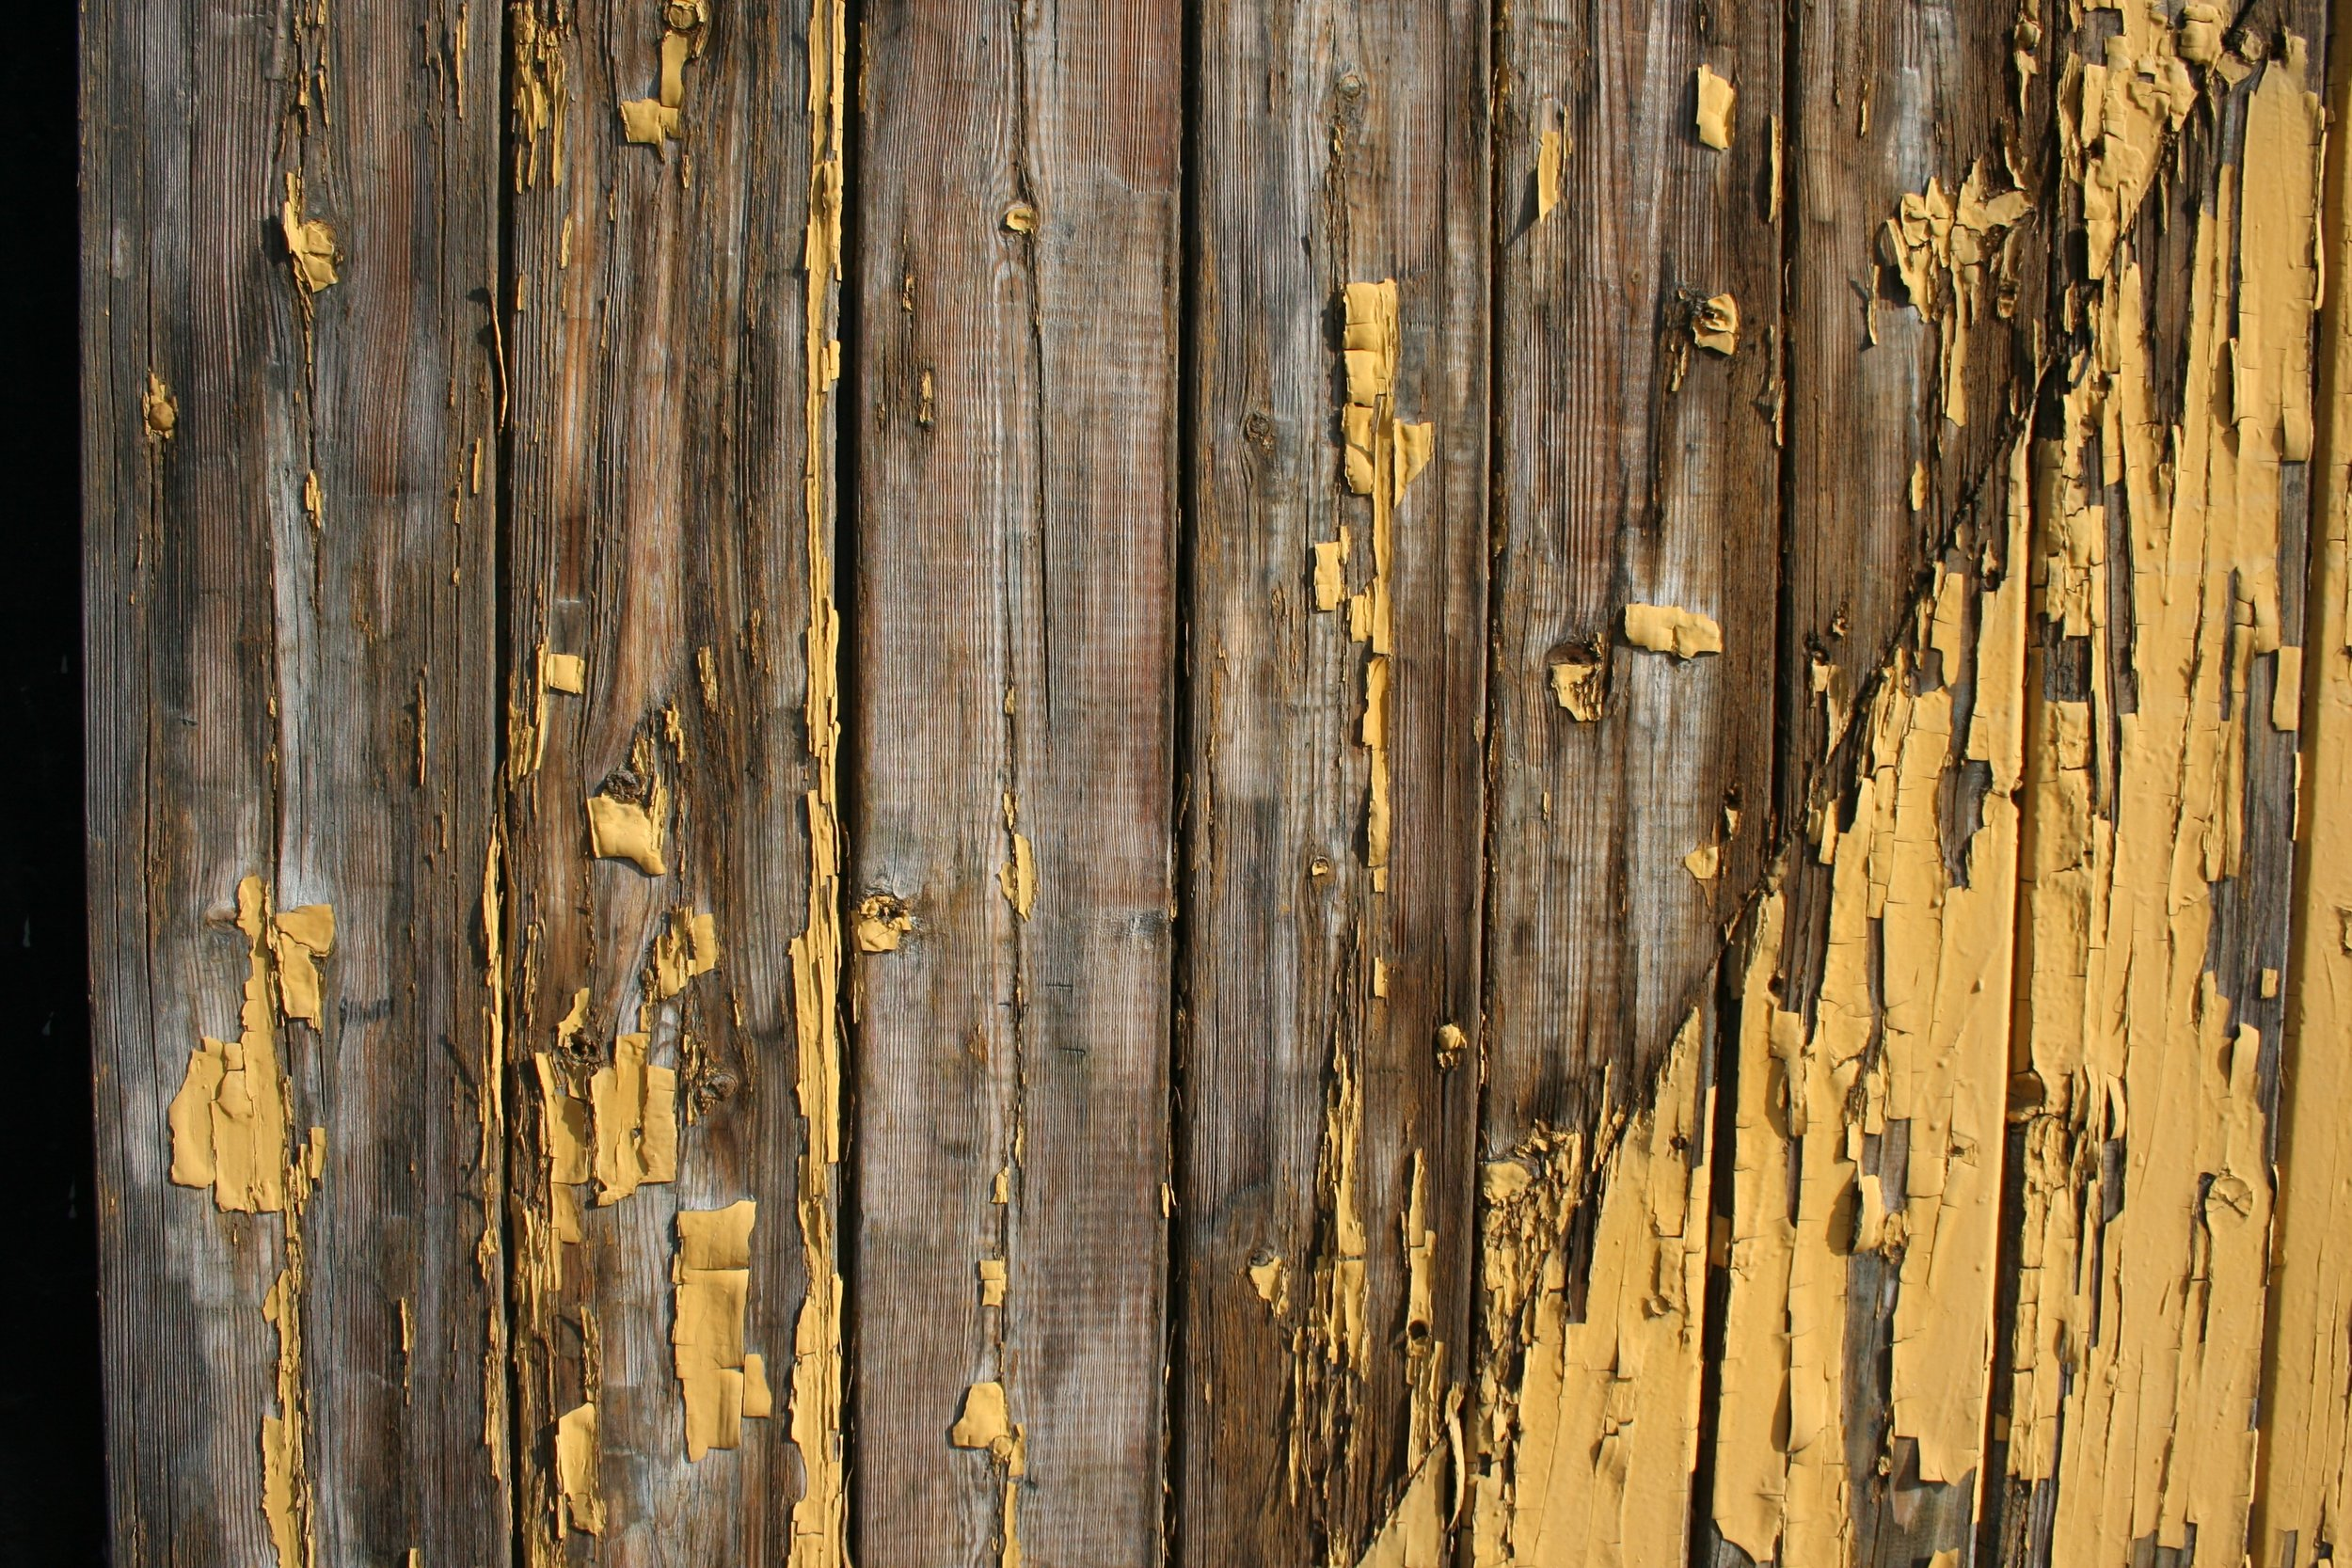 Should I Paint My Wooden Fence?